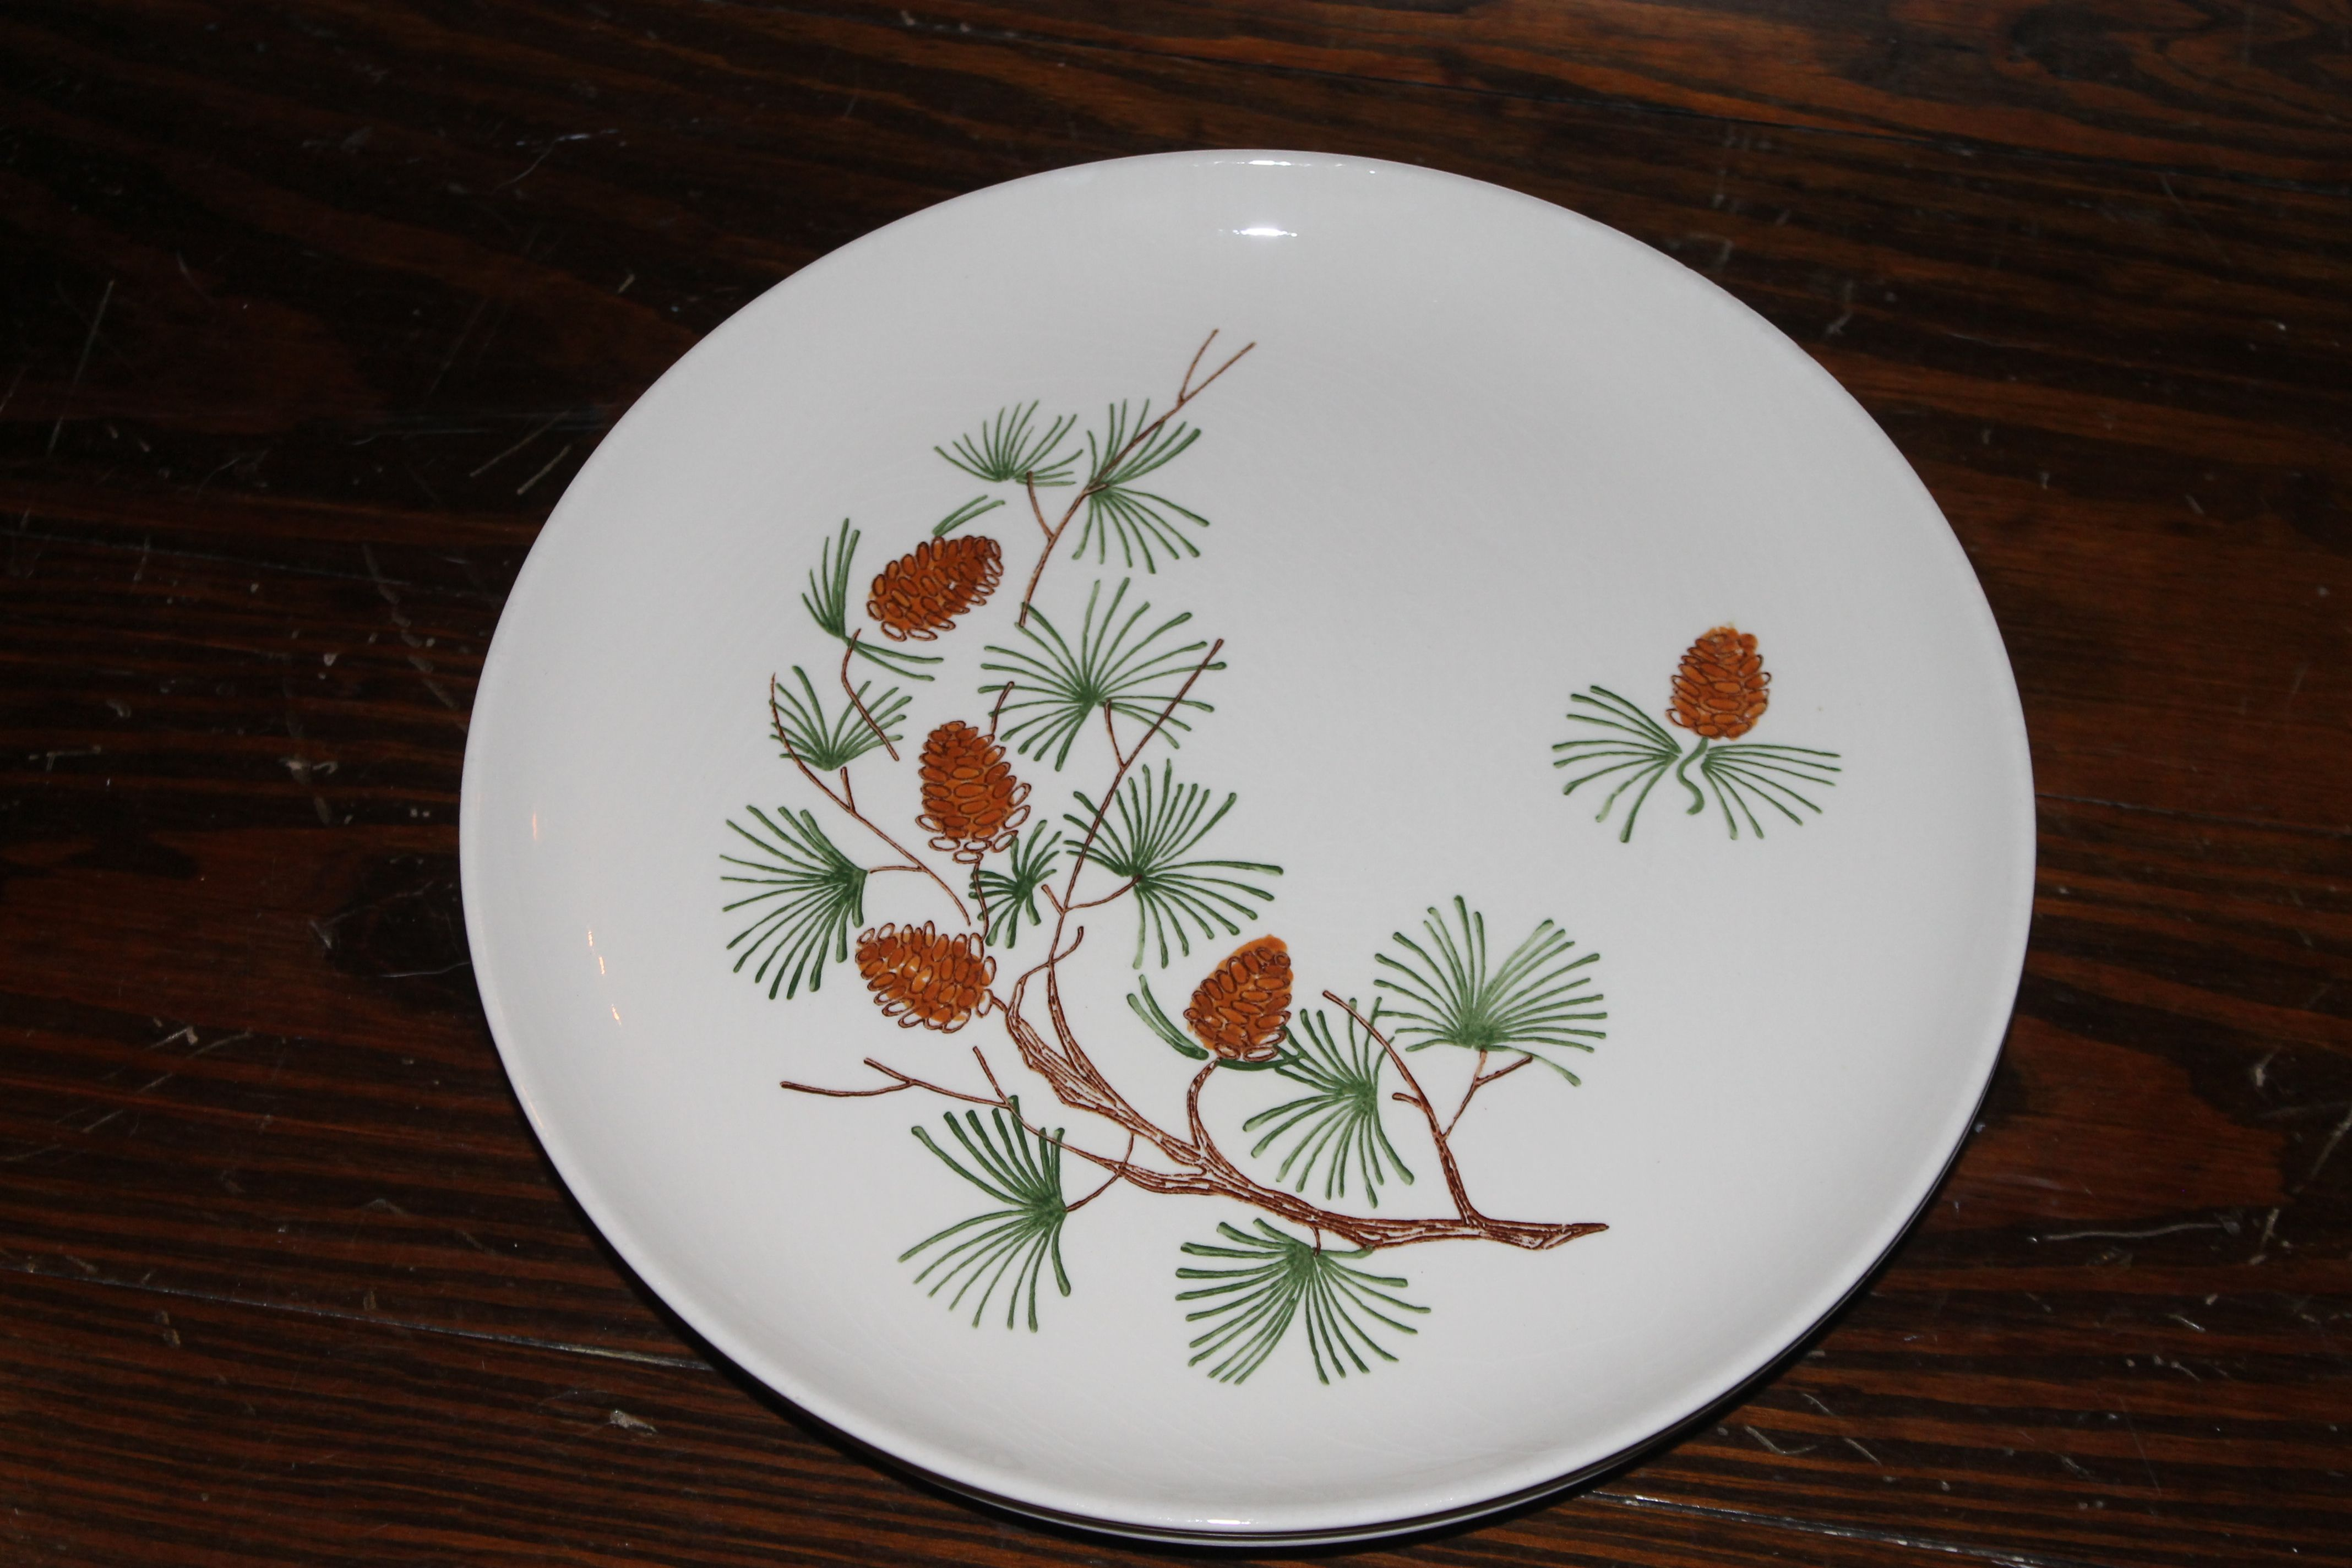 Ovenproof Dinnerware pinecones with green pine needles9.5  dinner plates 3 available & Ovenproof Dinnerware pinecones with green pine needles9.5